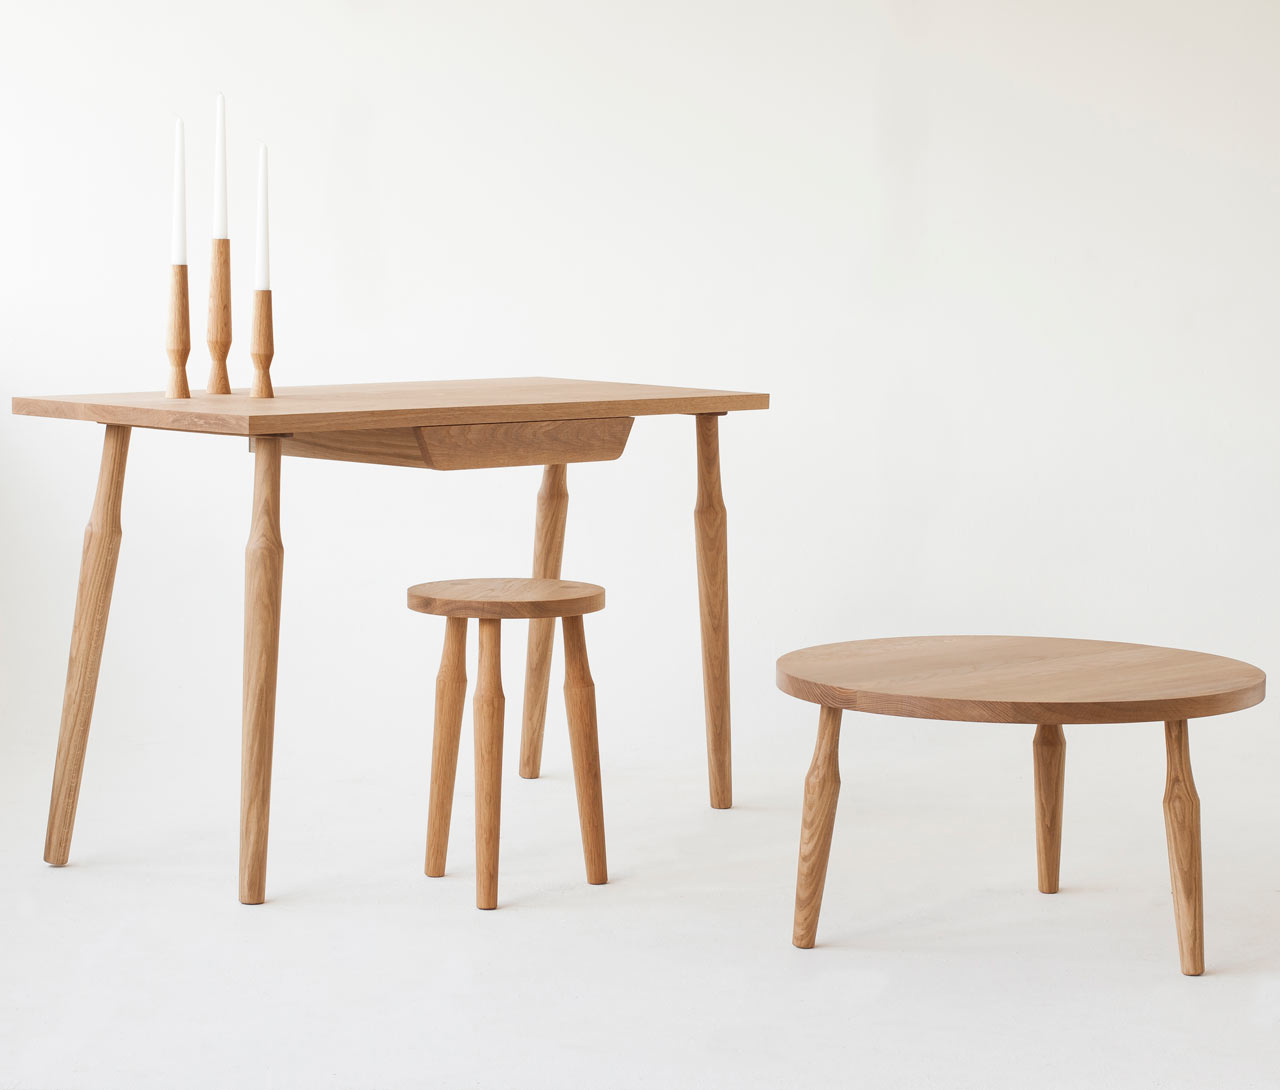 Furniture Inspired by Modernist Architects by Liam Treanor